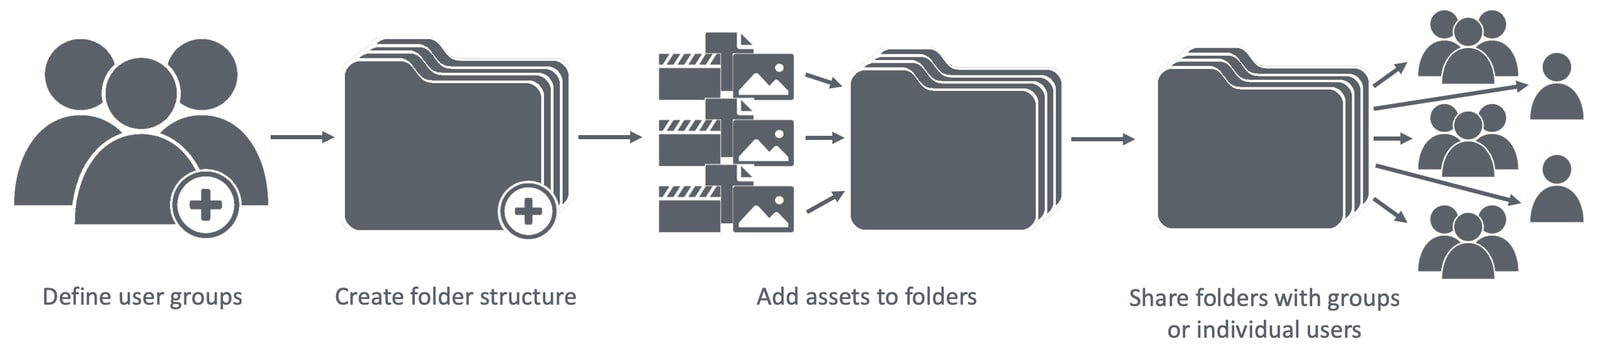 Folder sharing and permissions workflow